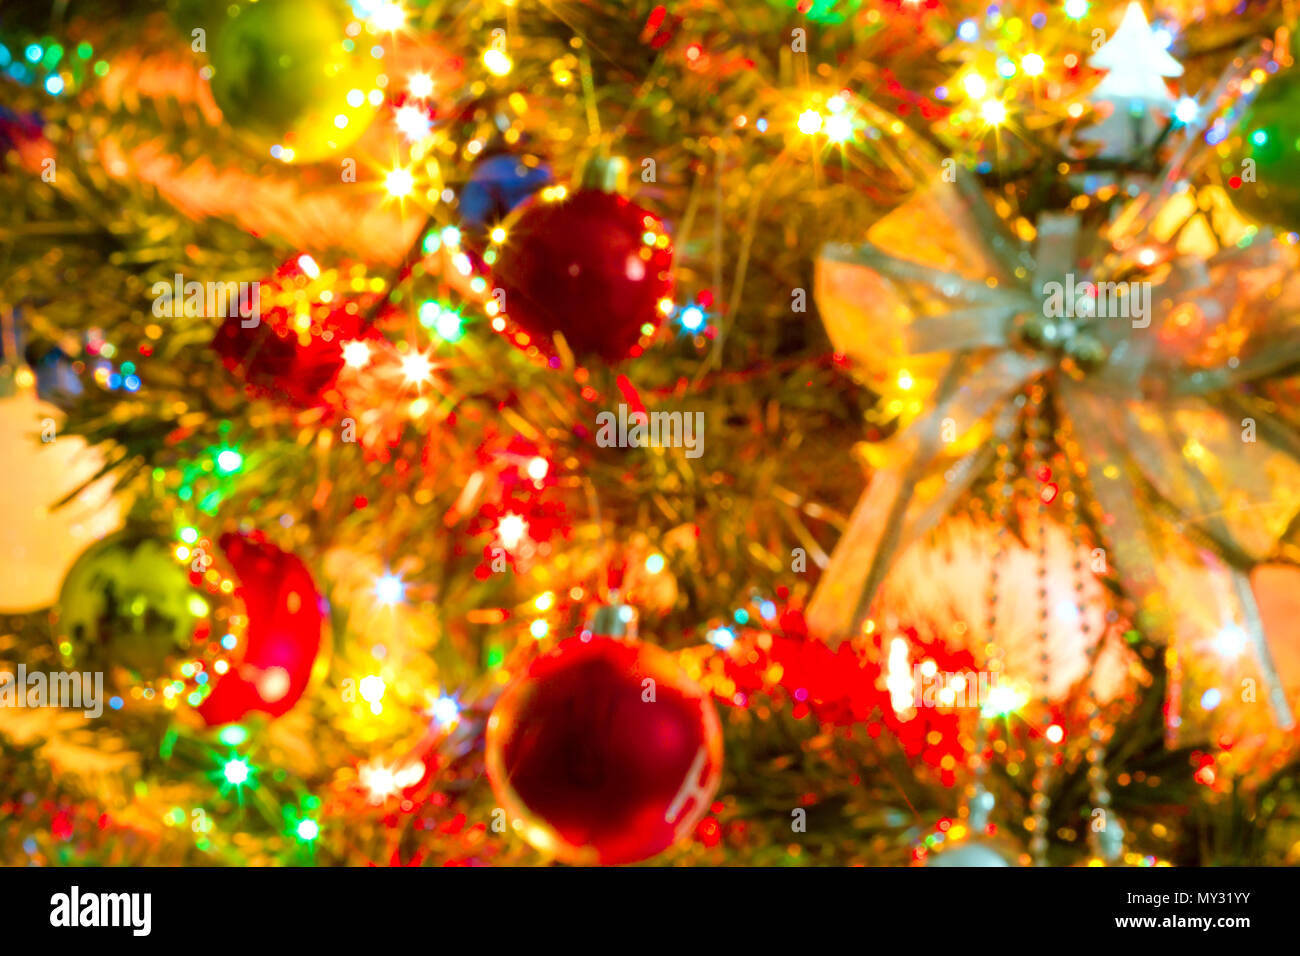 Beautiful Christmas Background Images.Blurred Image Beautiful Christmas Tree And Colorful Light